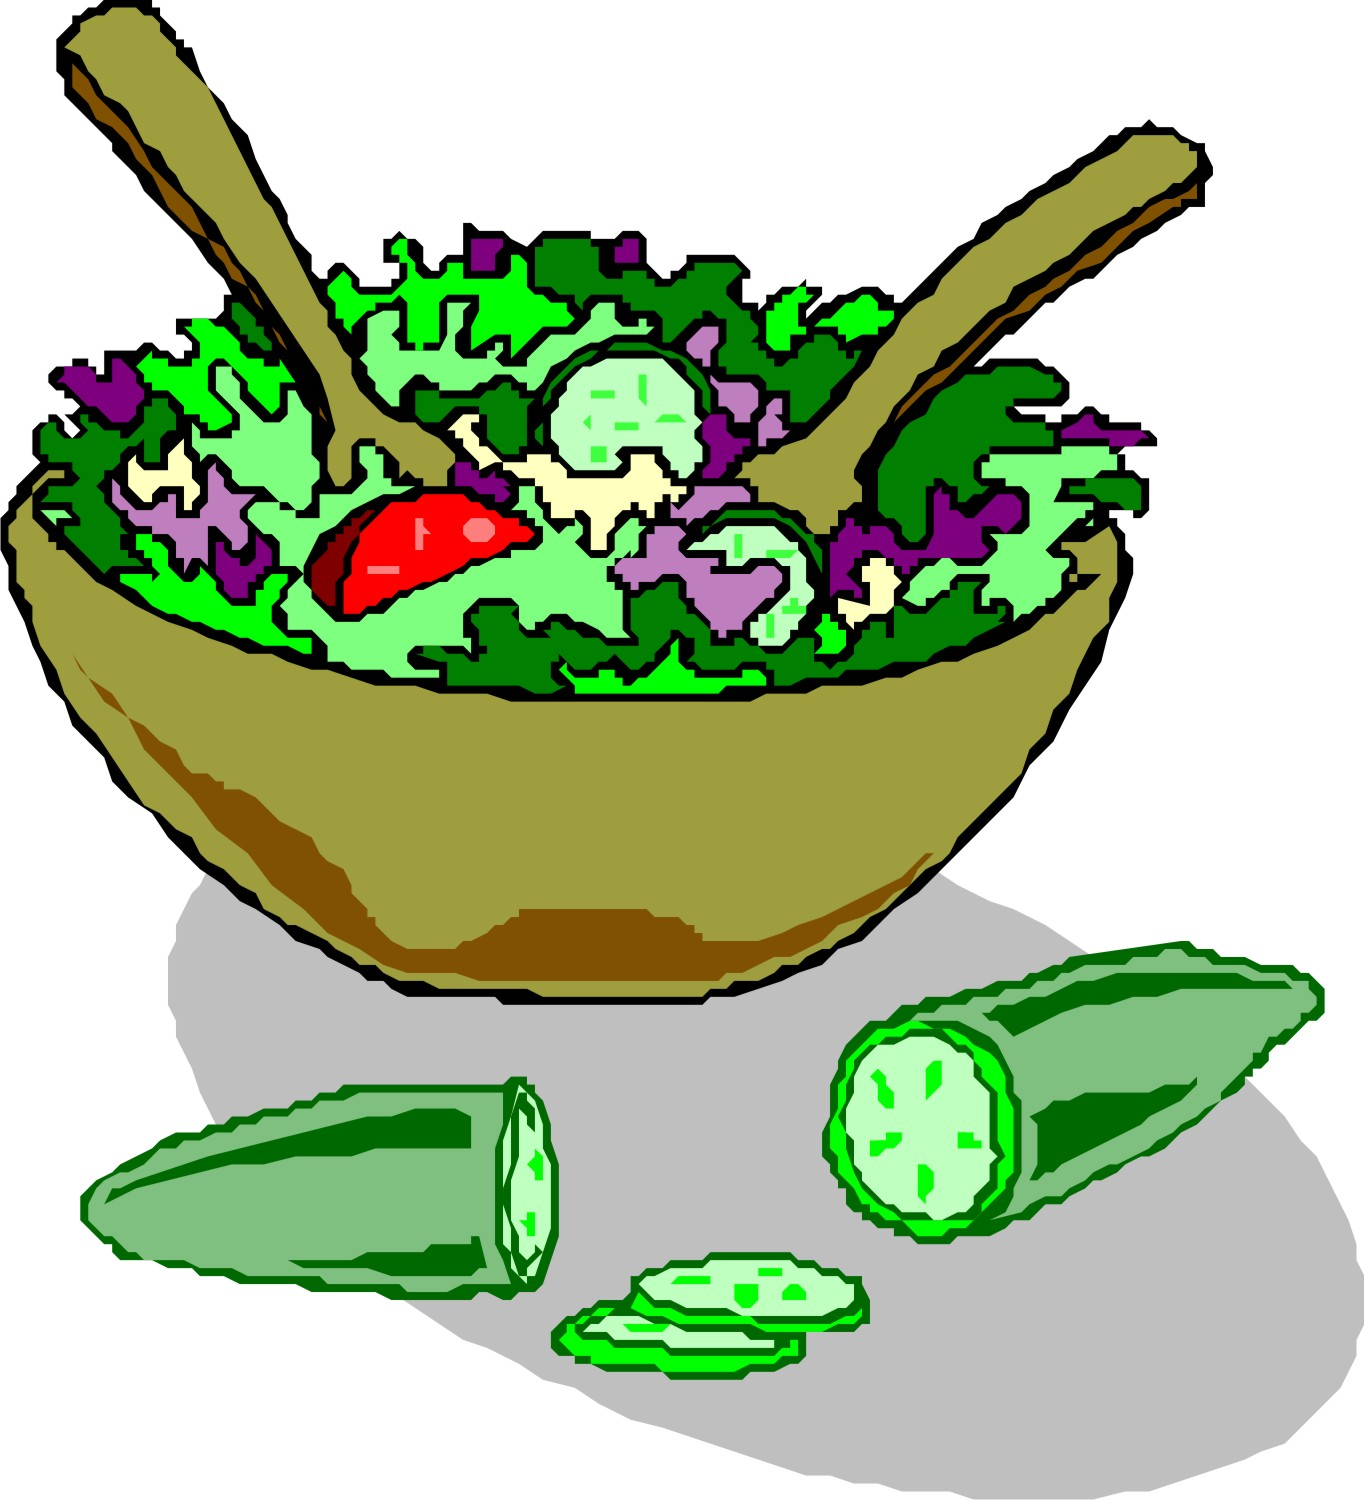 Salad images free clipart vector black and white stock Salad clip art free clipart images 3 - ClipartPost vector black and white stock